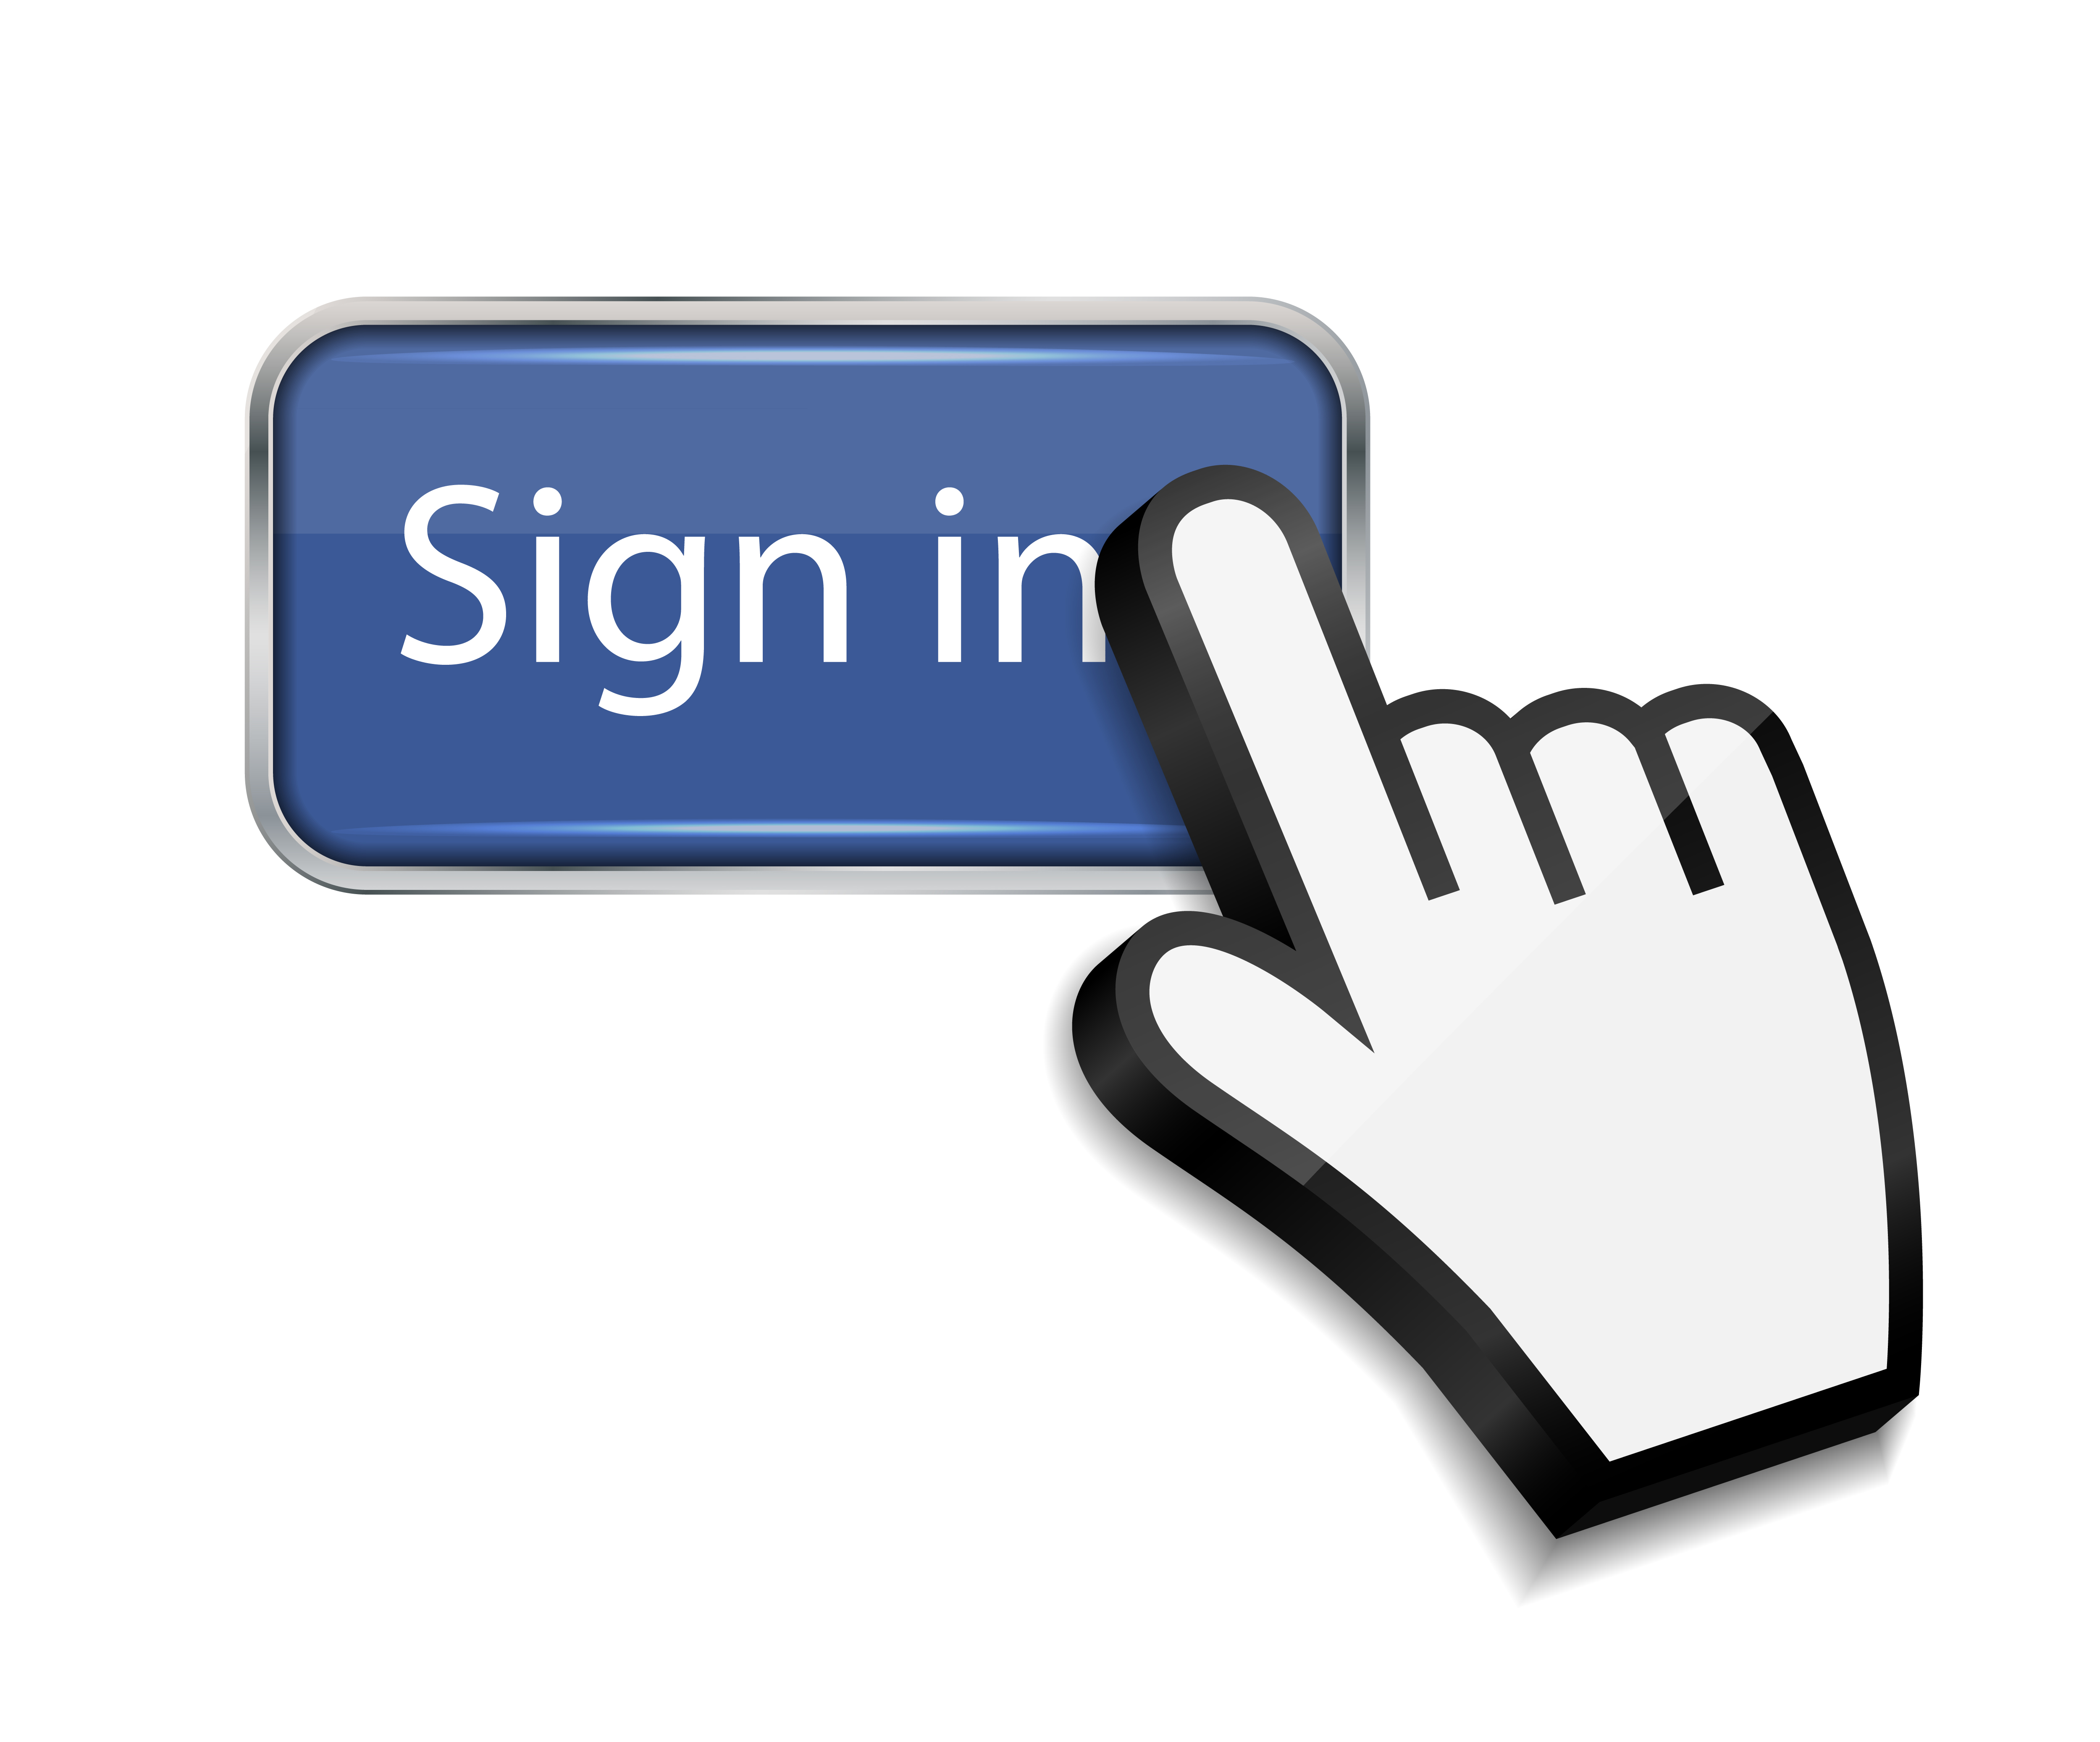 Sign In >> Mouse Hand Cursor On Sign In Button Vector Illustration Florida